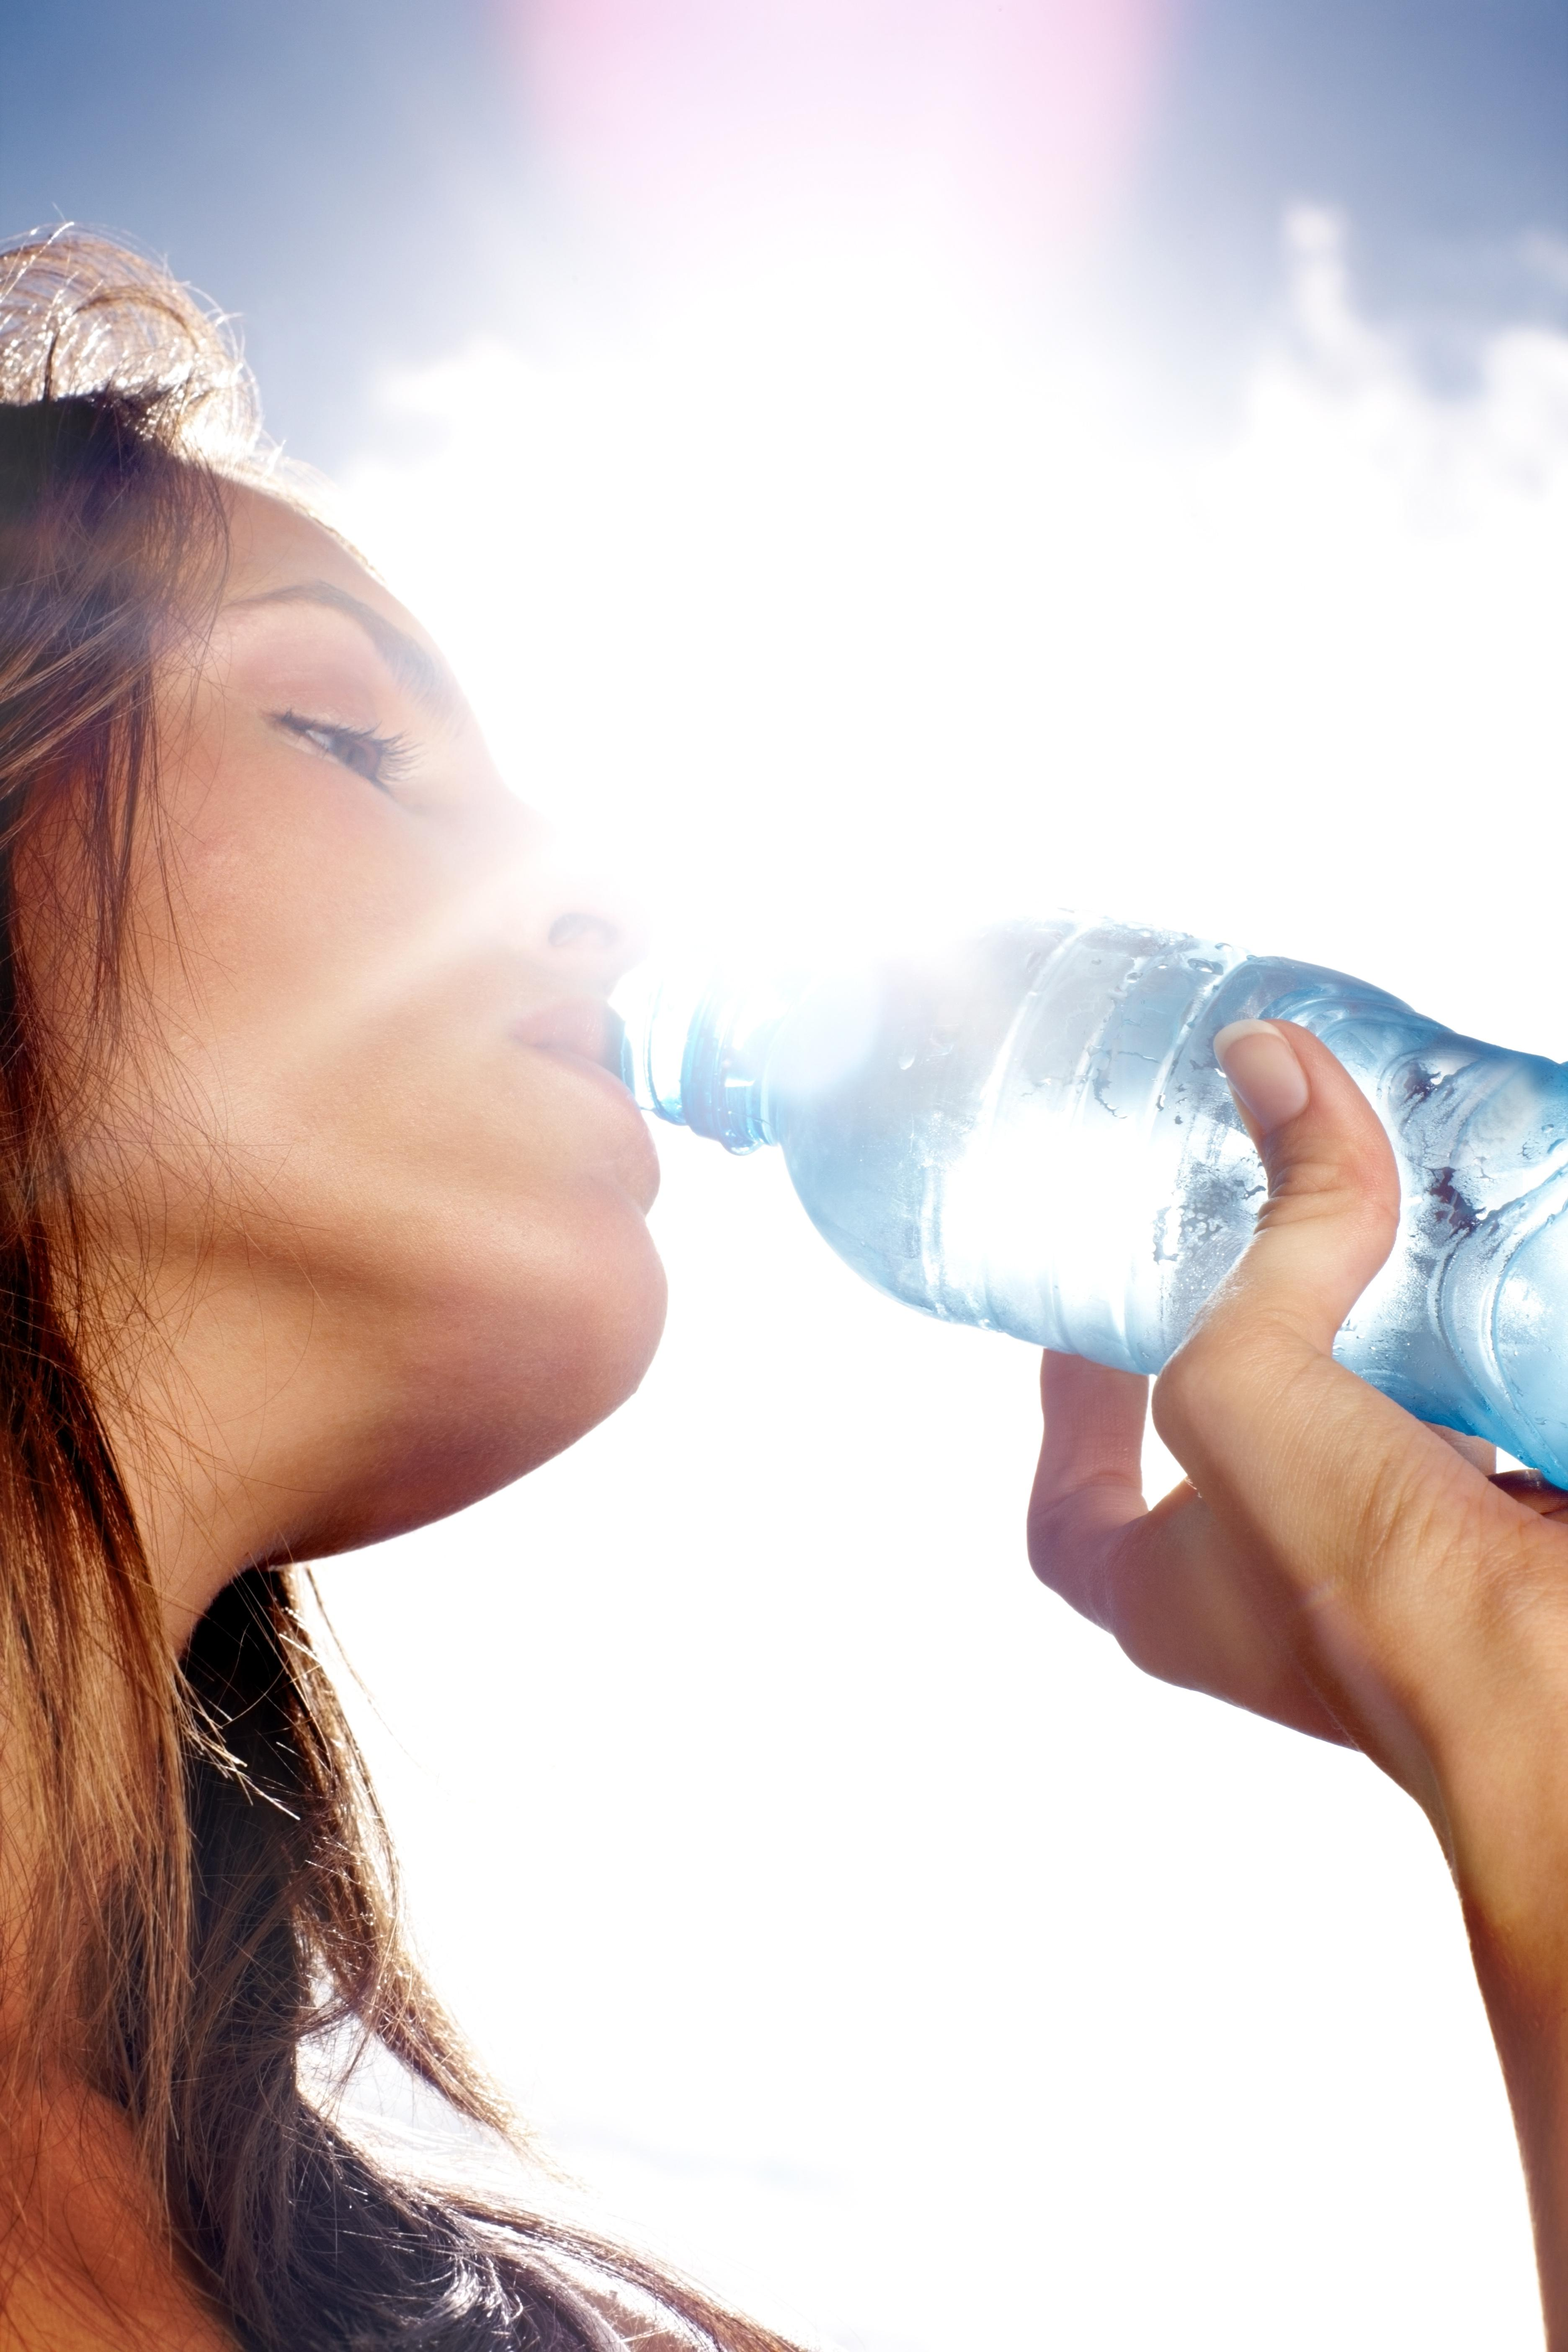 Thirsty woman drinking water on a sunny day